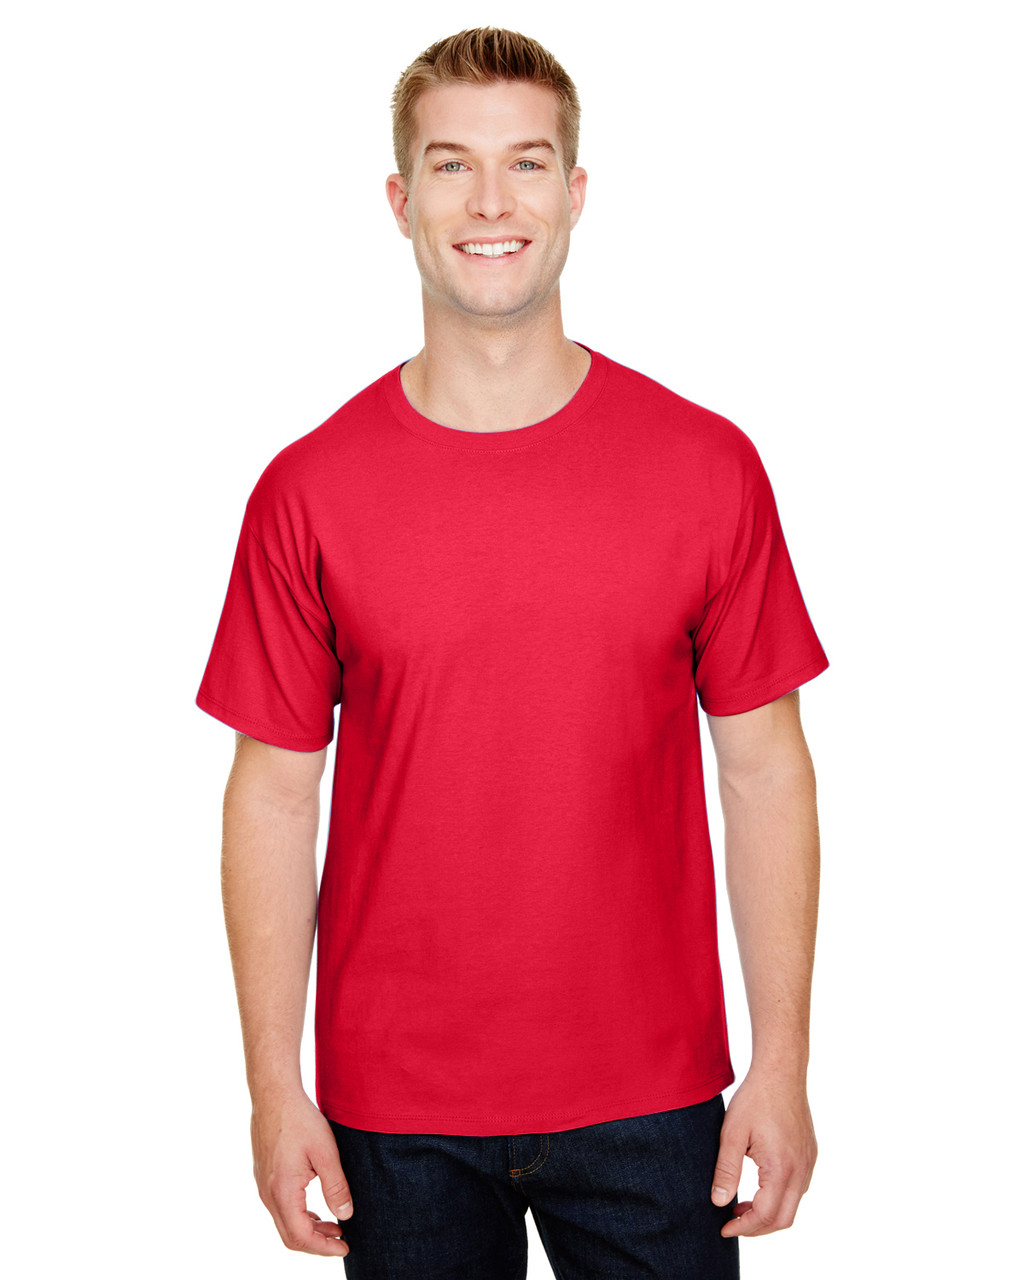 Athletic Red - CP10 Champion Adult Ringspun Cotton T-Shirt   BlankClothing.ca